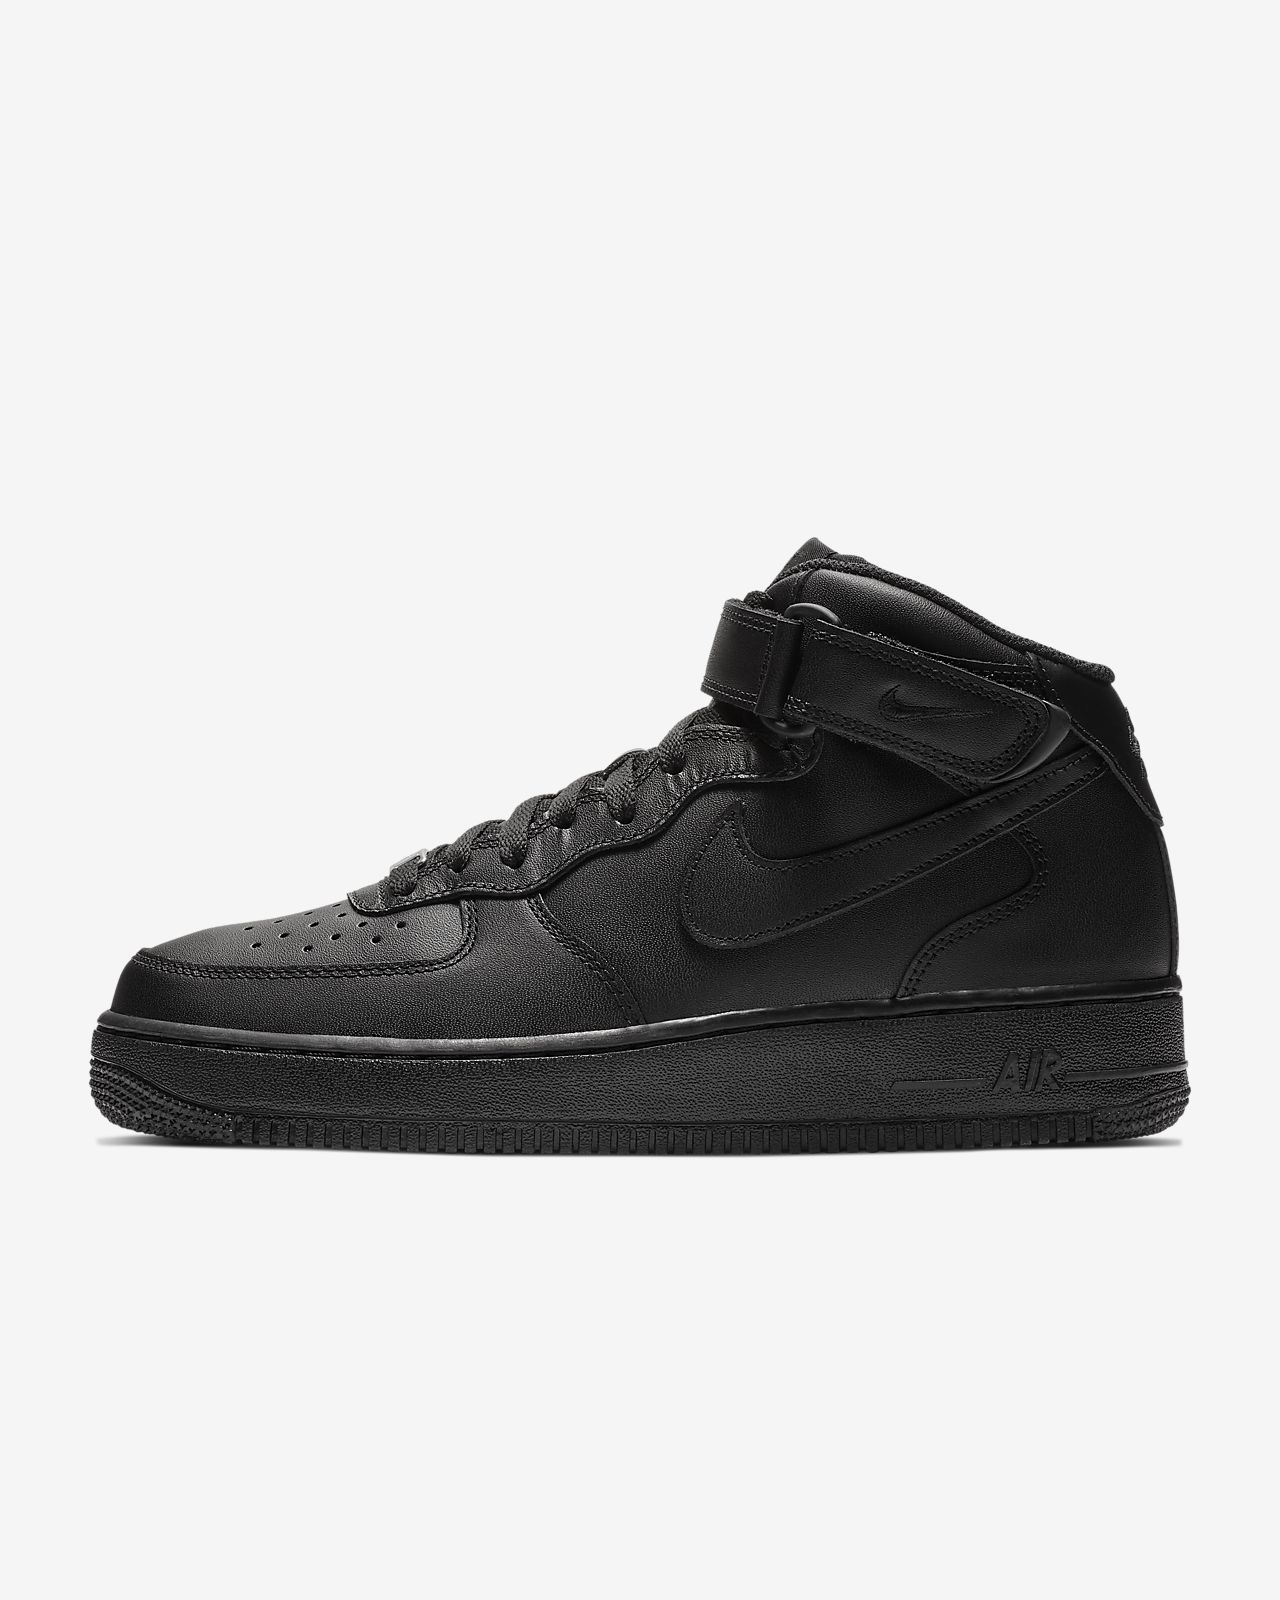 Nike Air Force 1 Mid 07 Shoes Black Black Black For Men